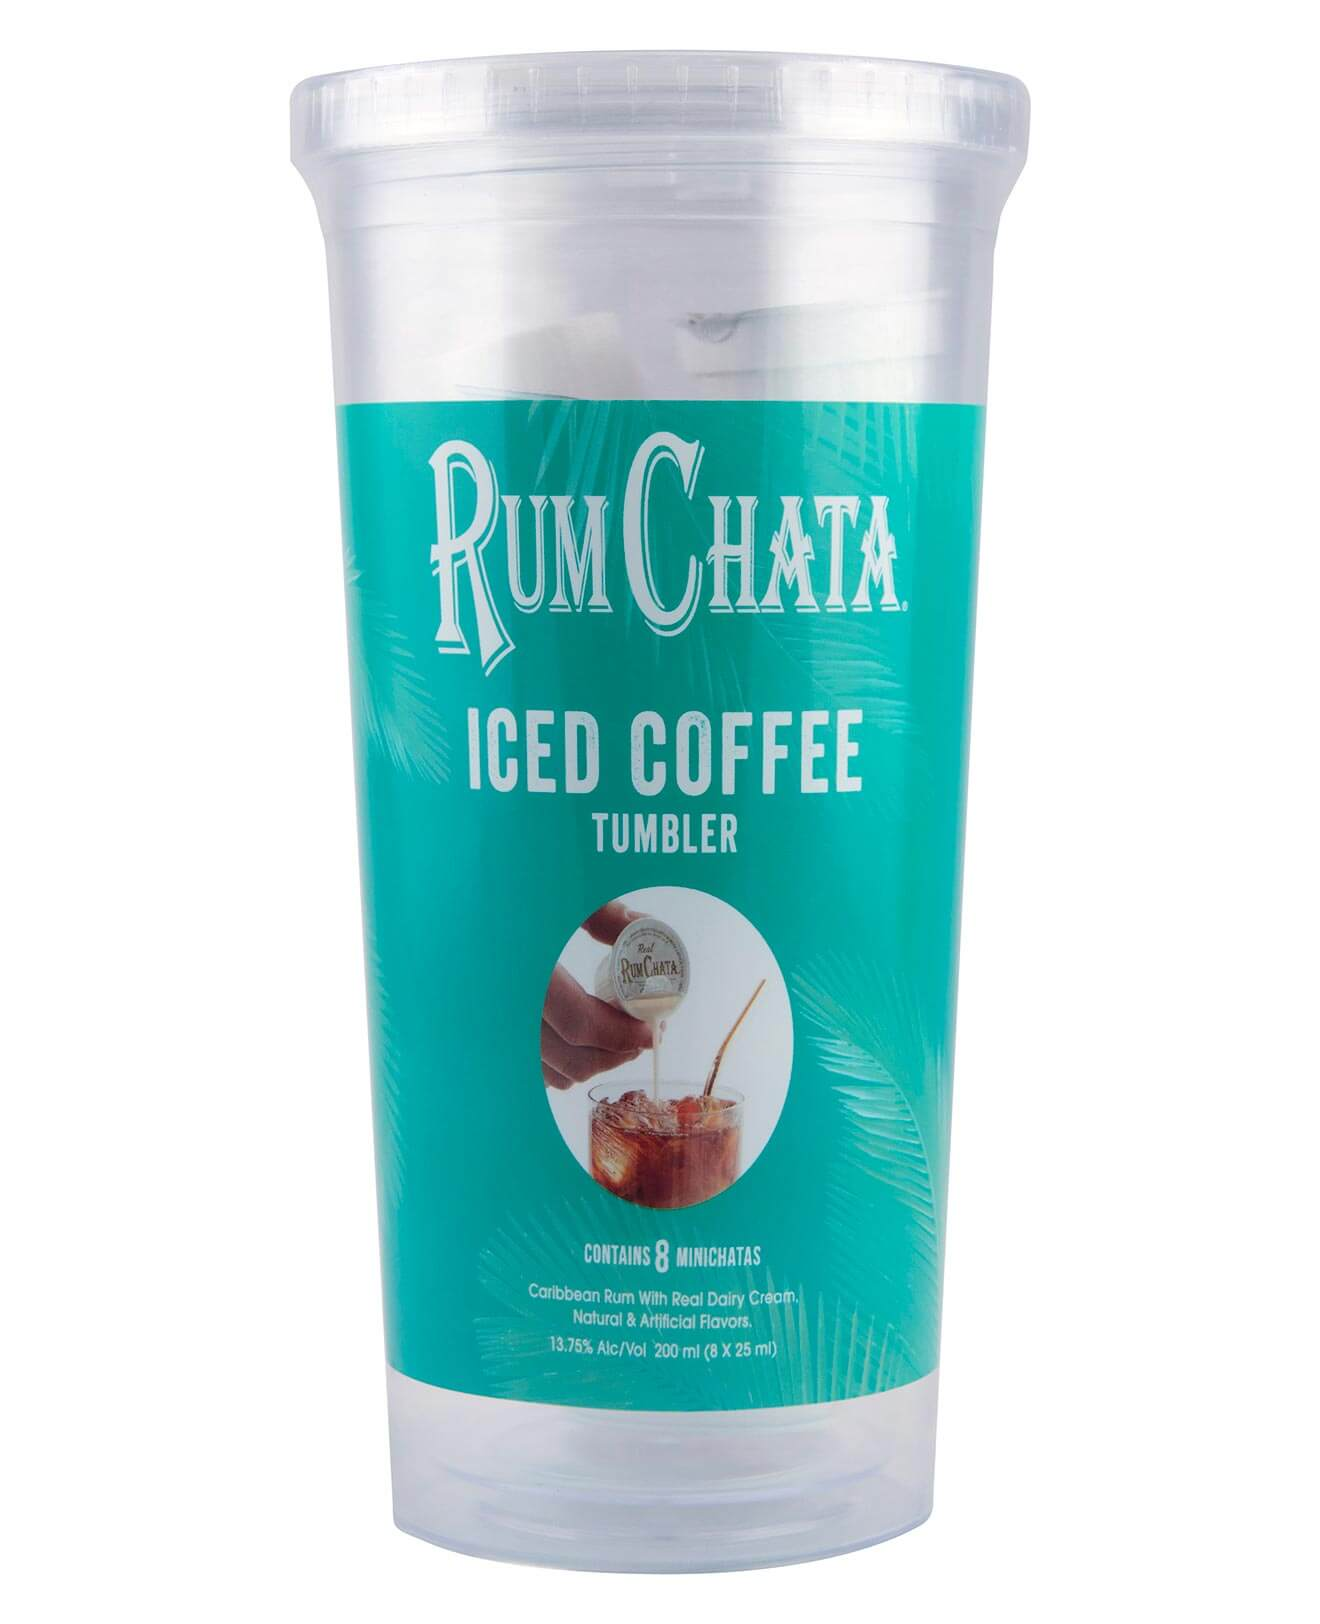 RumChata Iced Coffee Tumbler, product on white back